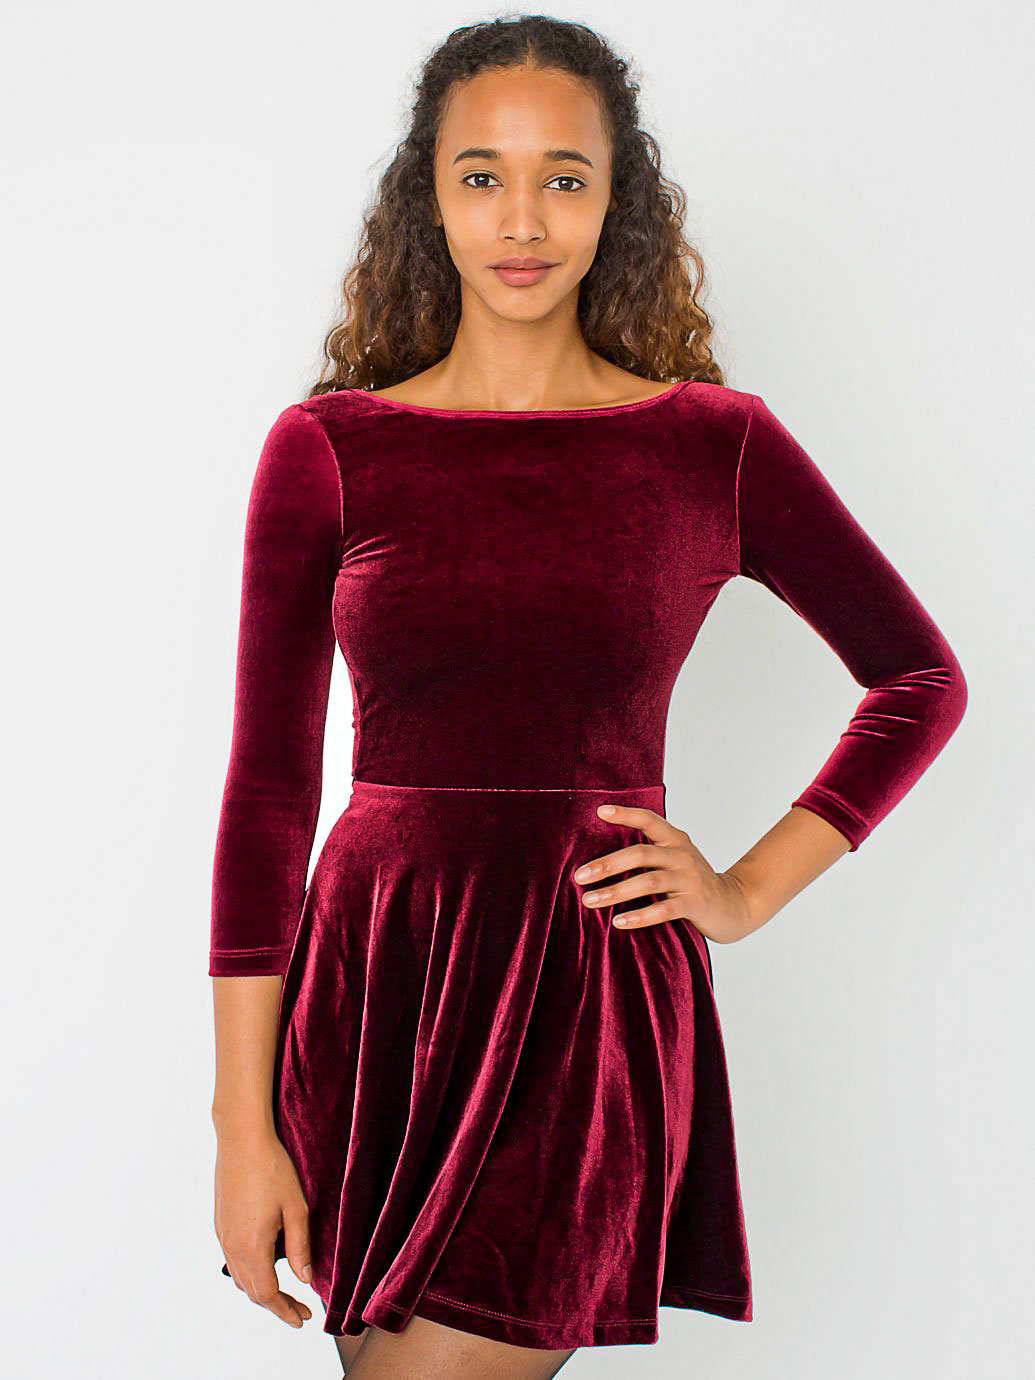 Karen Millen dark purple velvet skater evening dress with black neck trim size The dress has a concealed side zip and is fully lined. 99% cotton 1% elastane. From the underarm to the hem is 27